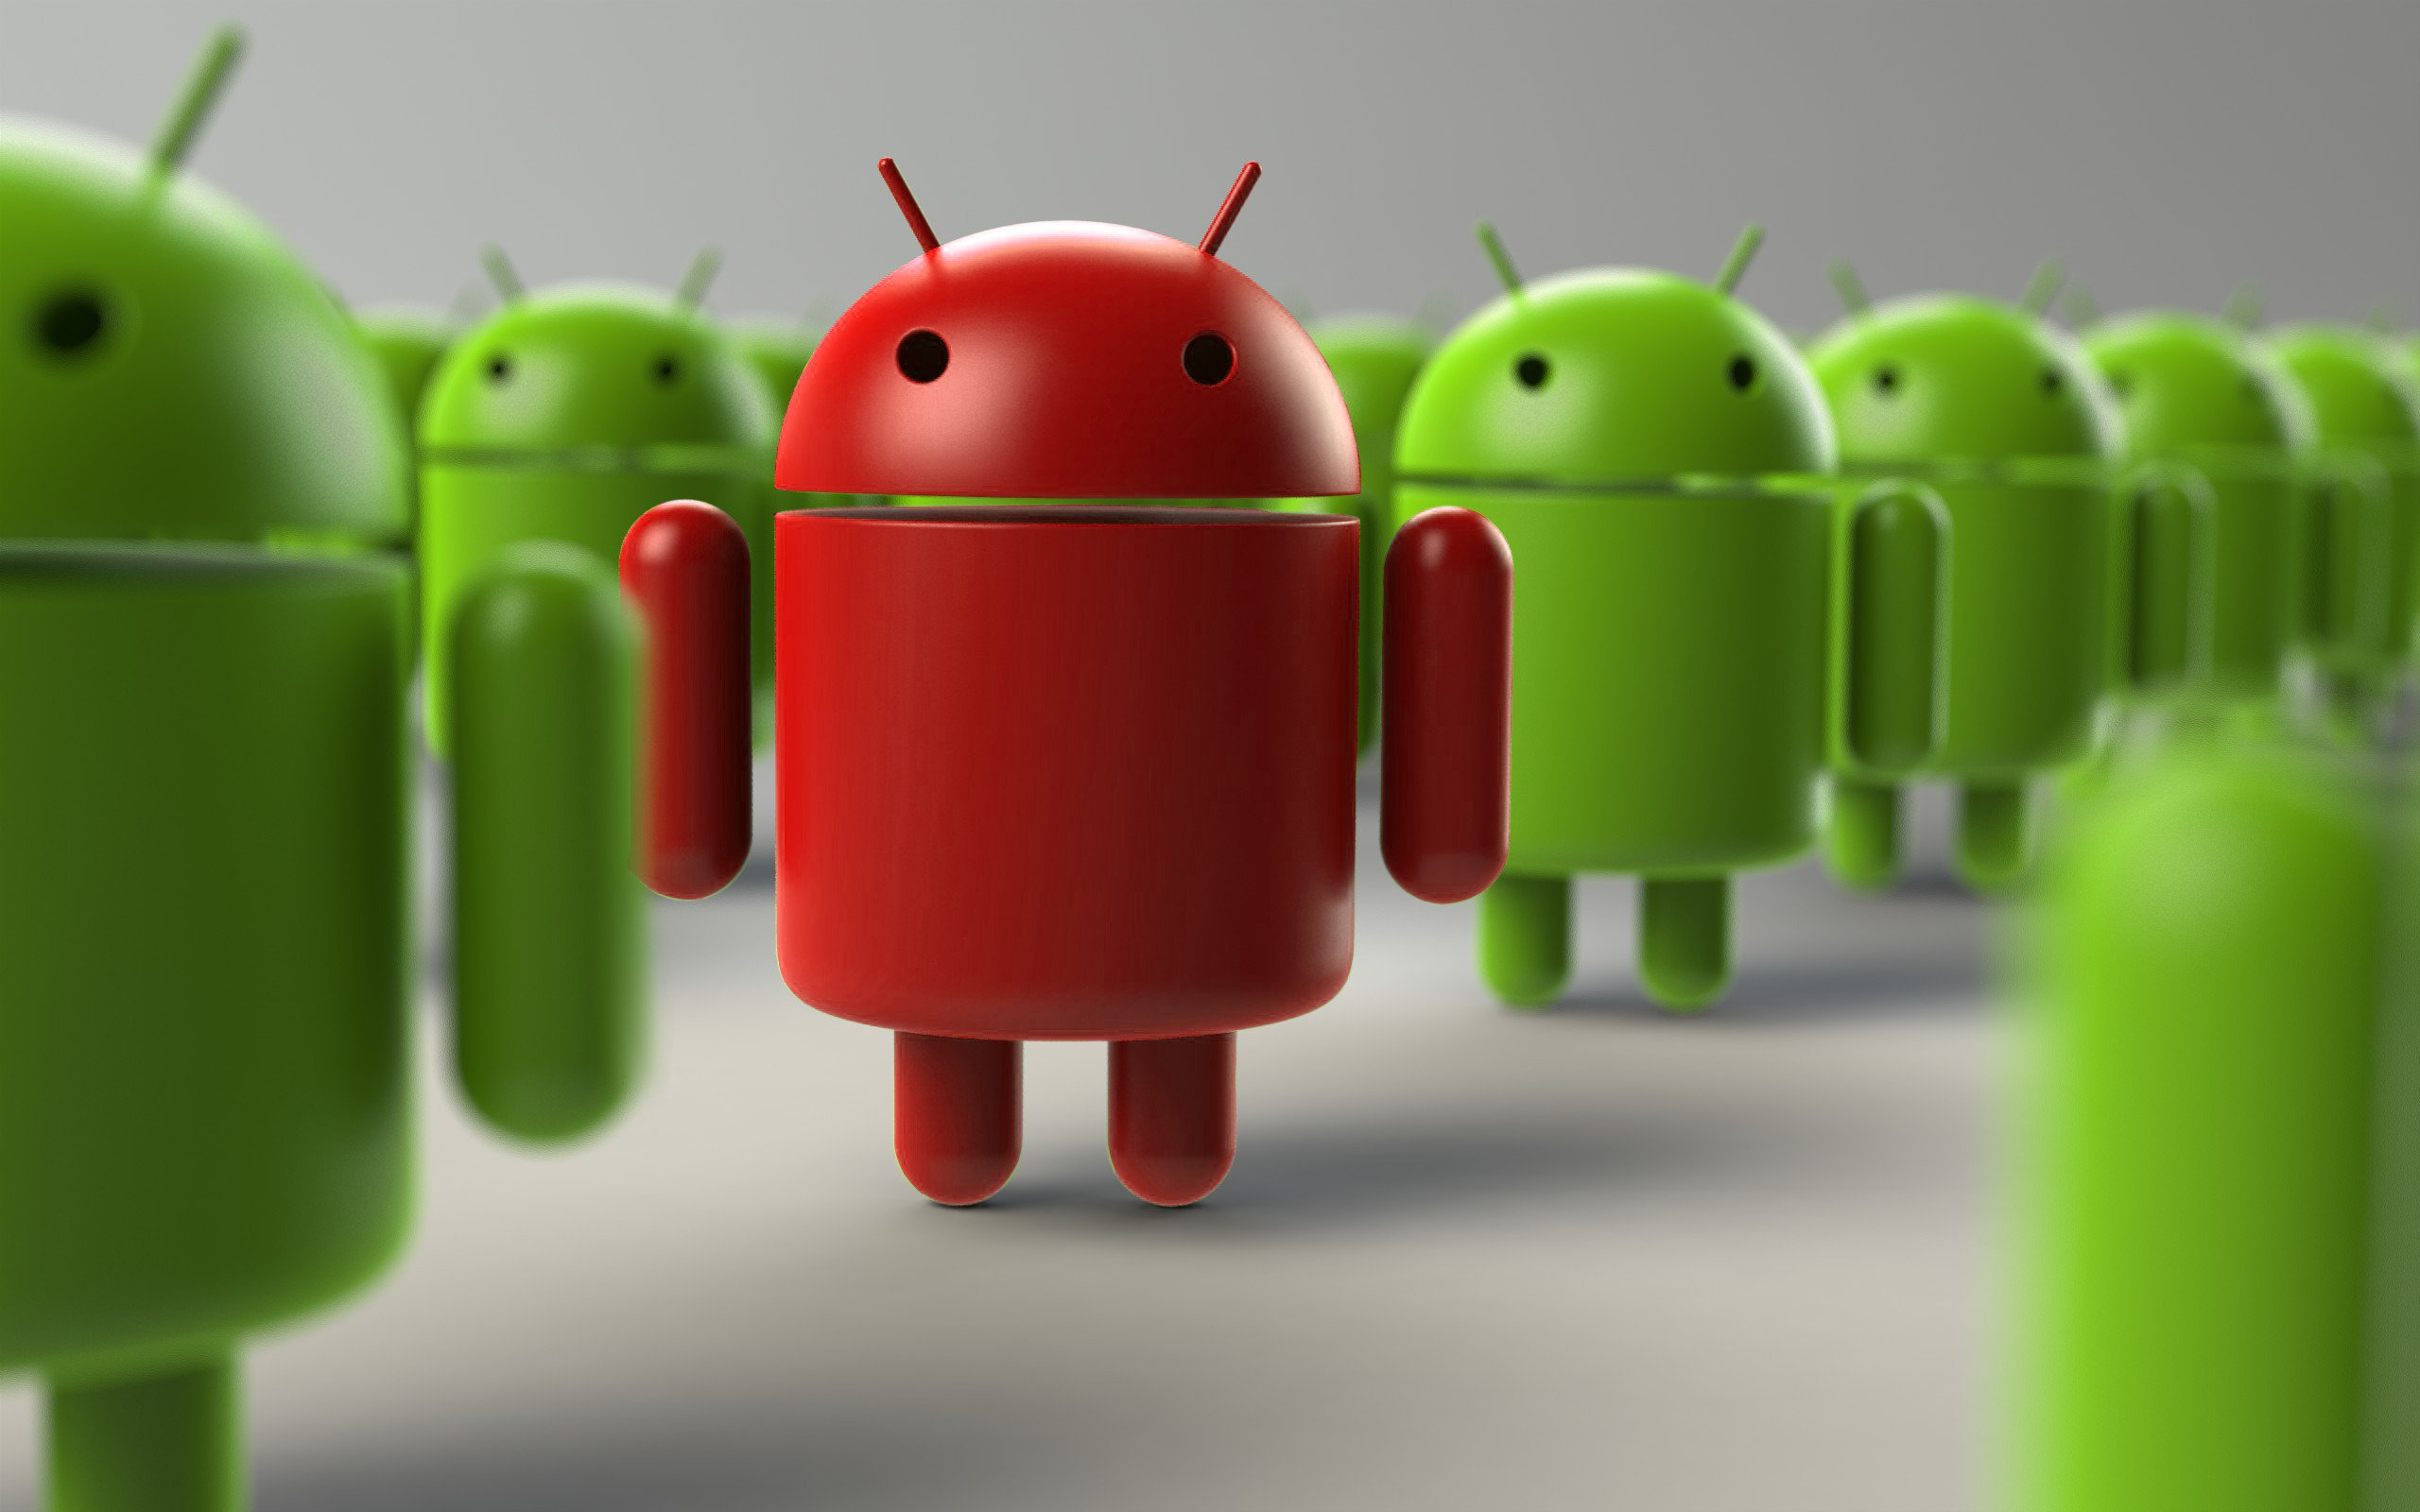 6 important features Android users will get soon